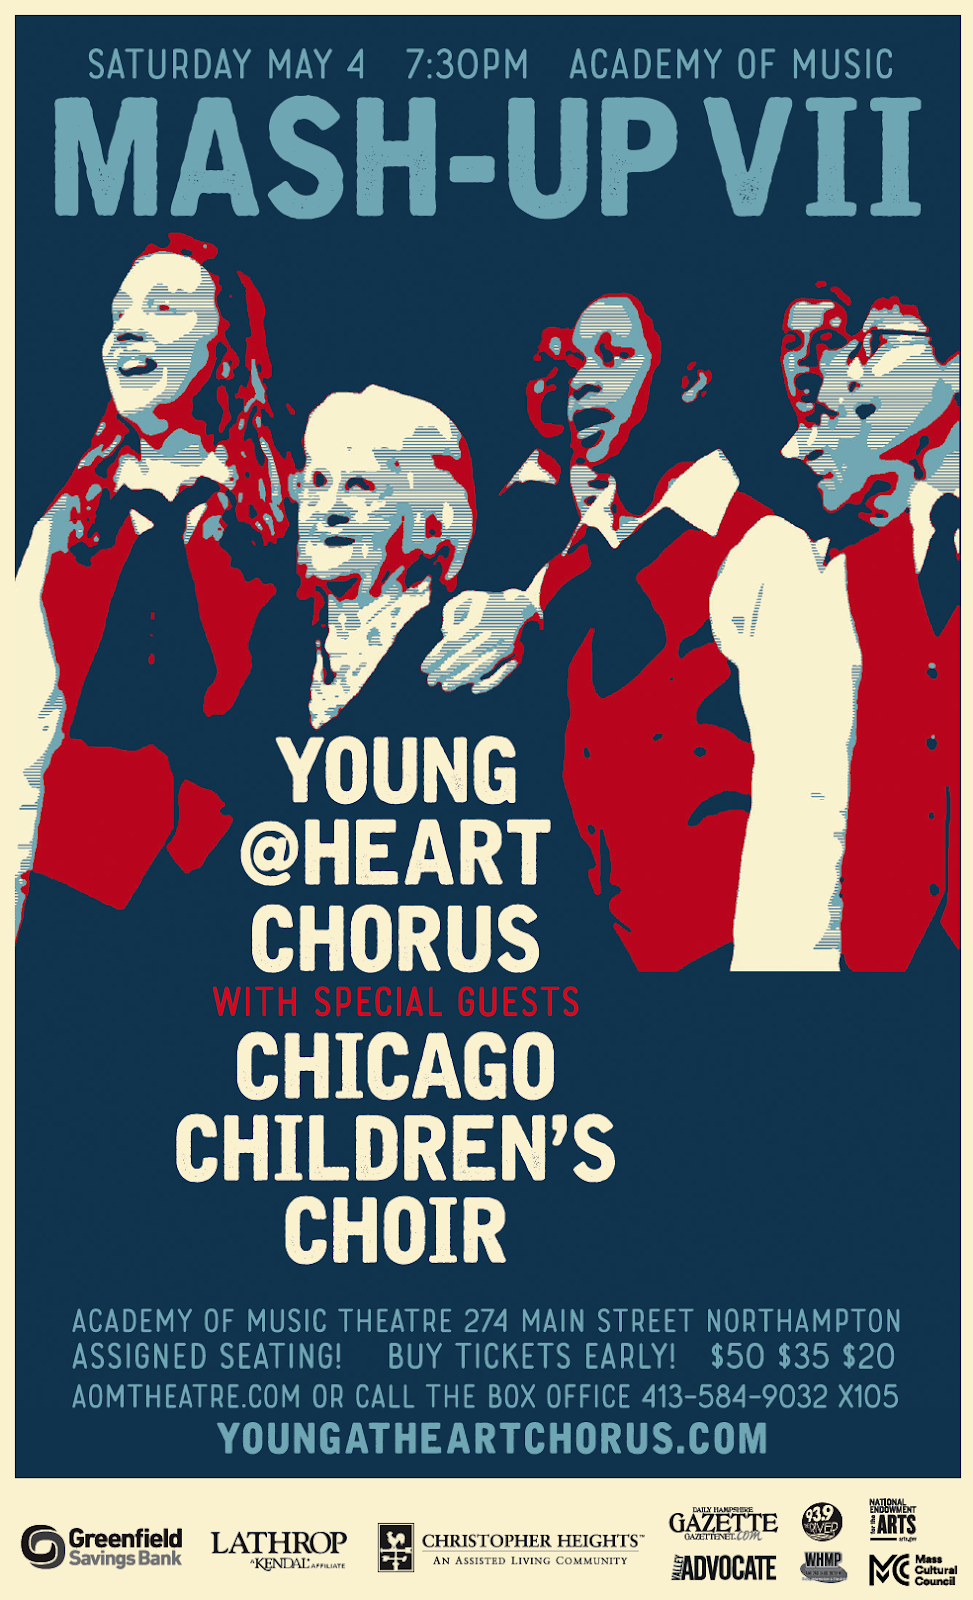 c1a956157c7b5 WHAT: Mash-Up VII: The Young@Heart Chorus (Y@H) and Chicago Children's  Choir (CCC) WHEN: Saturday, May 4 @ 7:30PM WHERE: Academy of Music Theatre,  ...